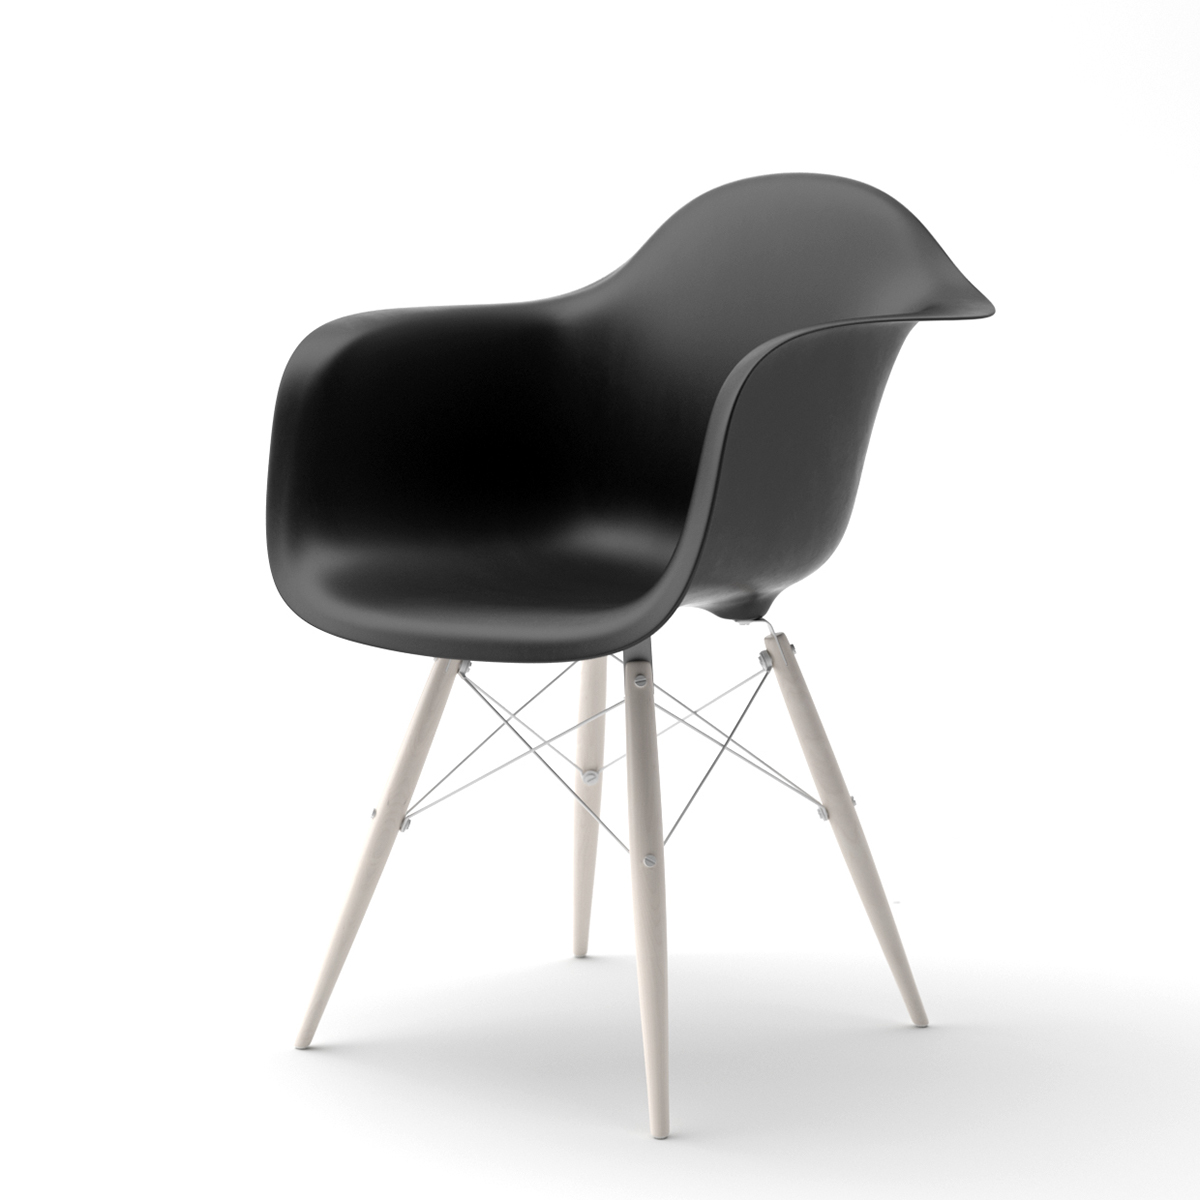 Eames Chair Vancouver Bc Eames Management Chair I Mid  : d9f44c175982395631c247a5224 from mermaidsofthelake.com size 1200 x 1200 jpeg 191kB